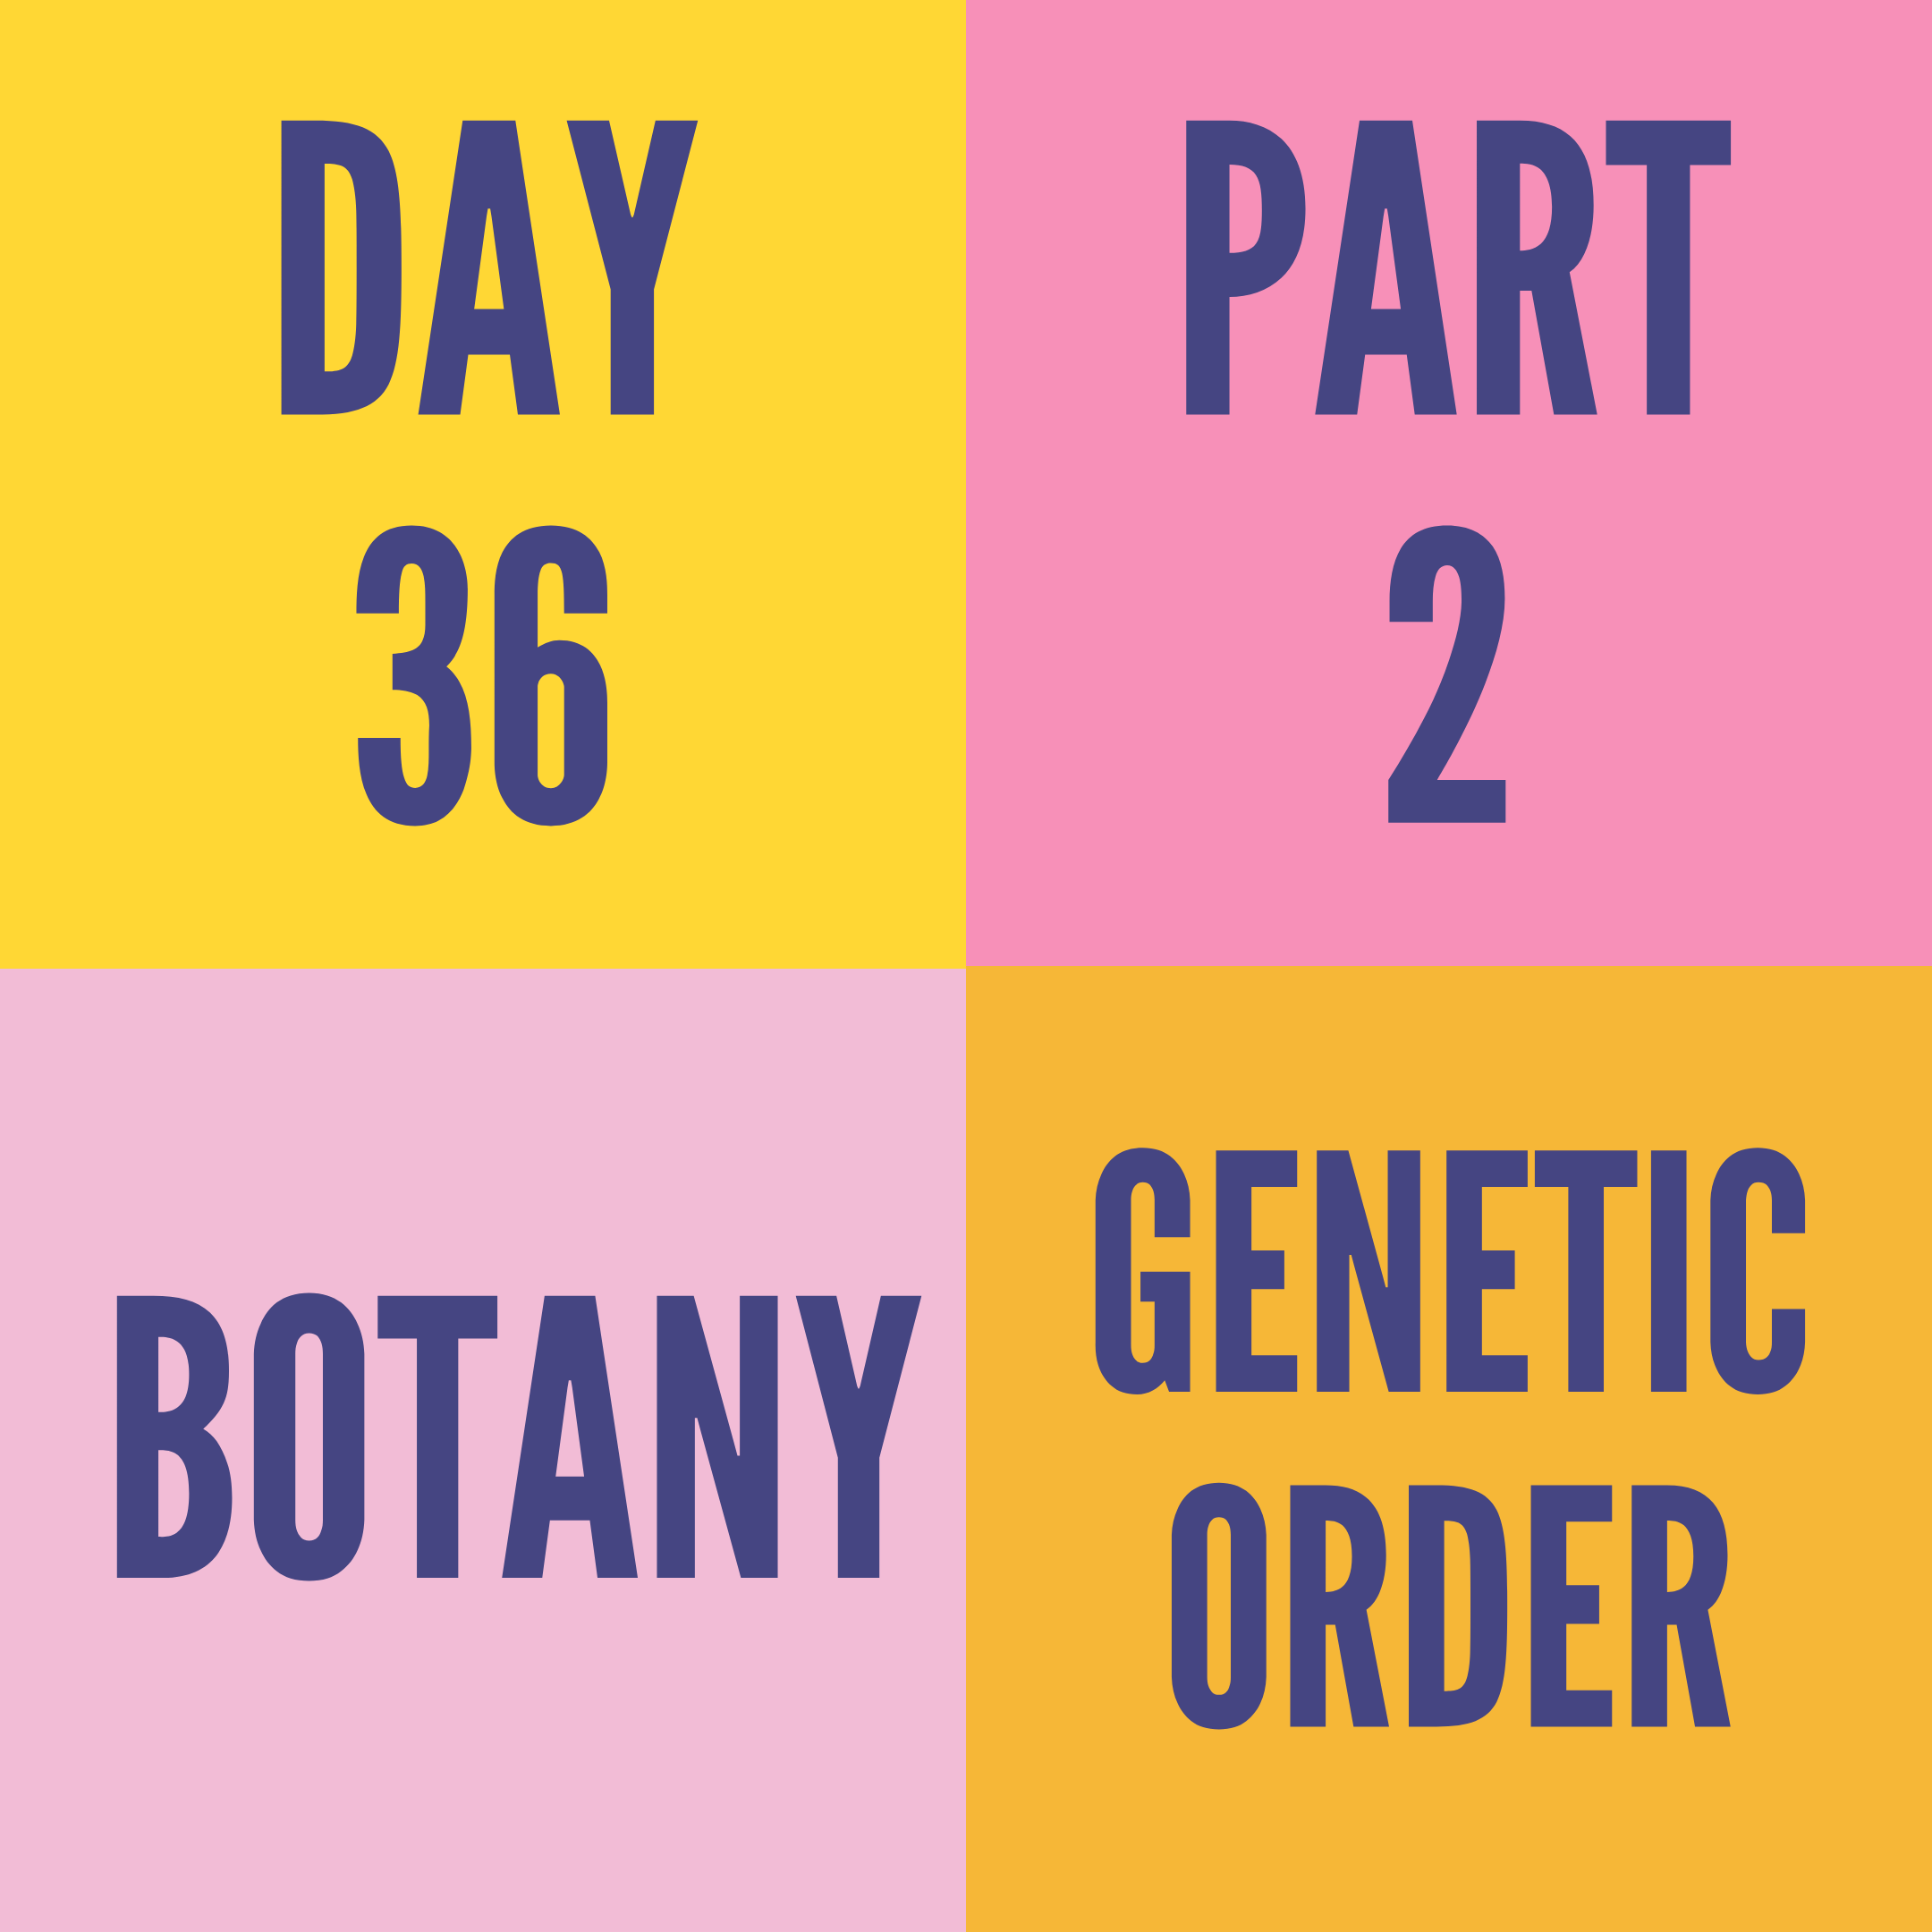 DAY-36 PART-2 GENETIC ORDER